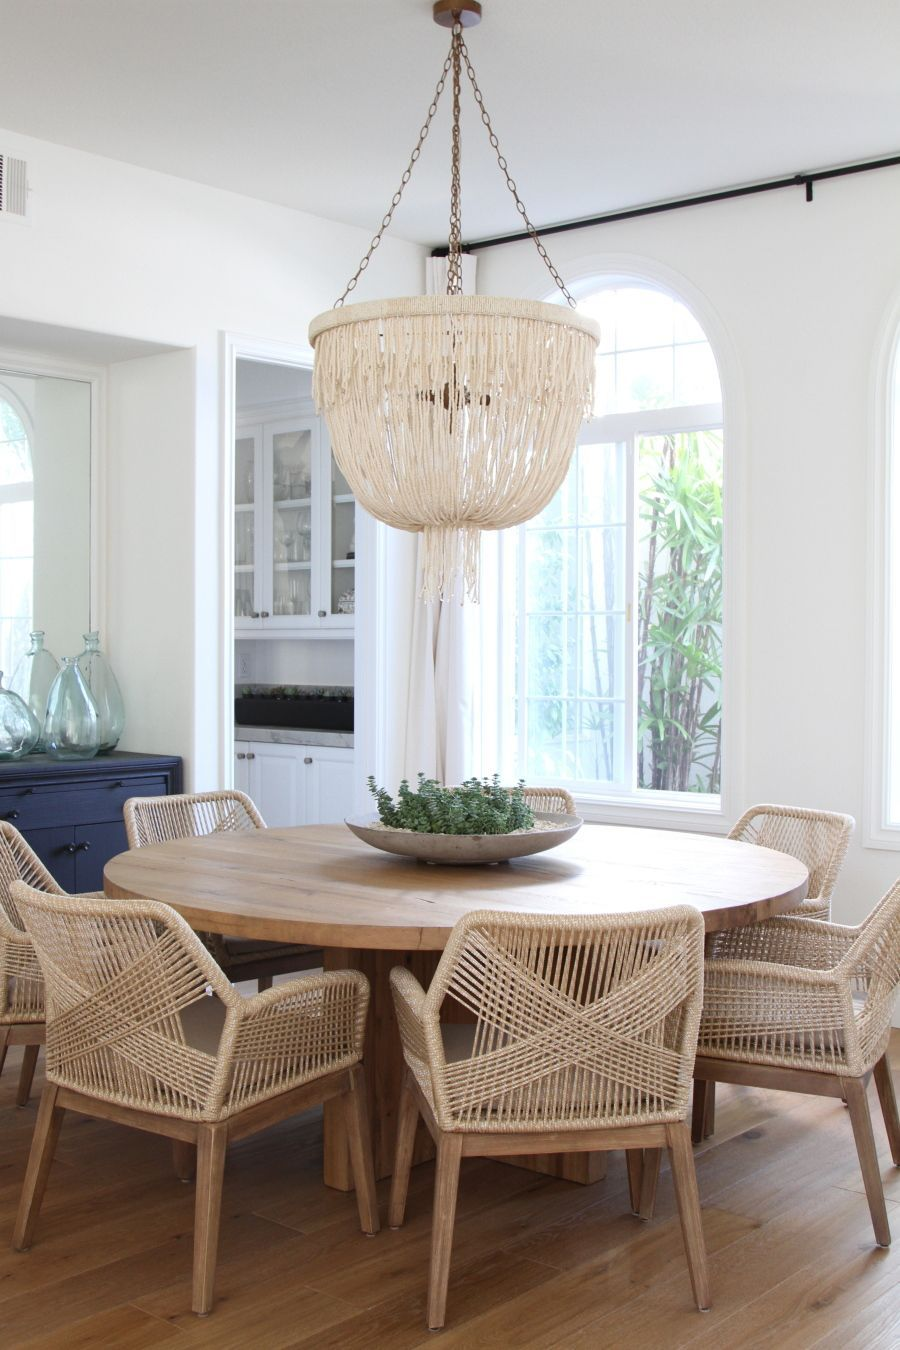 beaded chandelier and woven chairs flank a rounded wood dining table ...